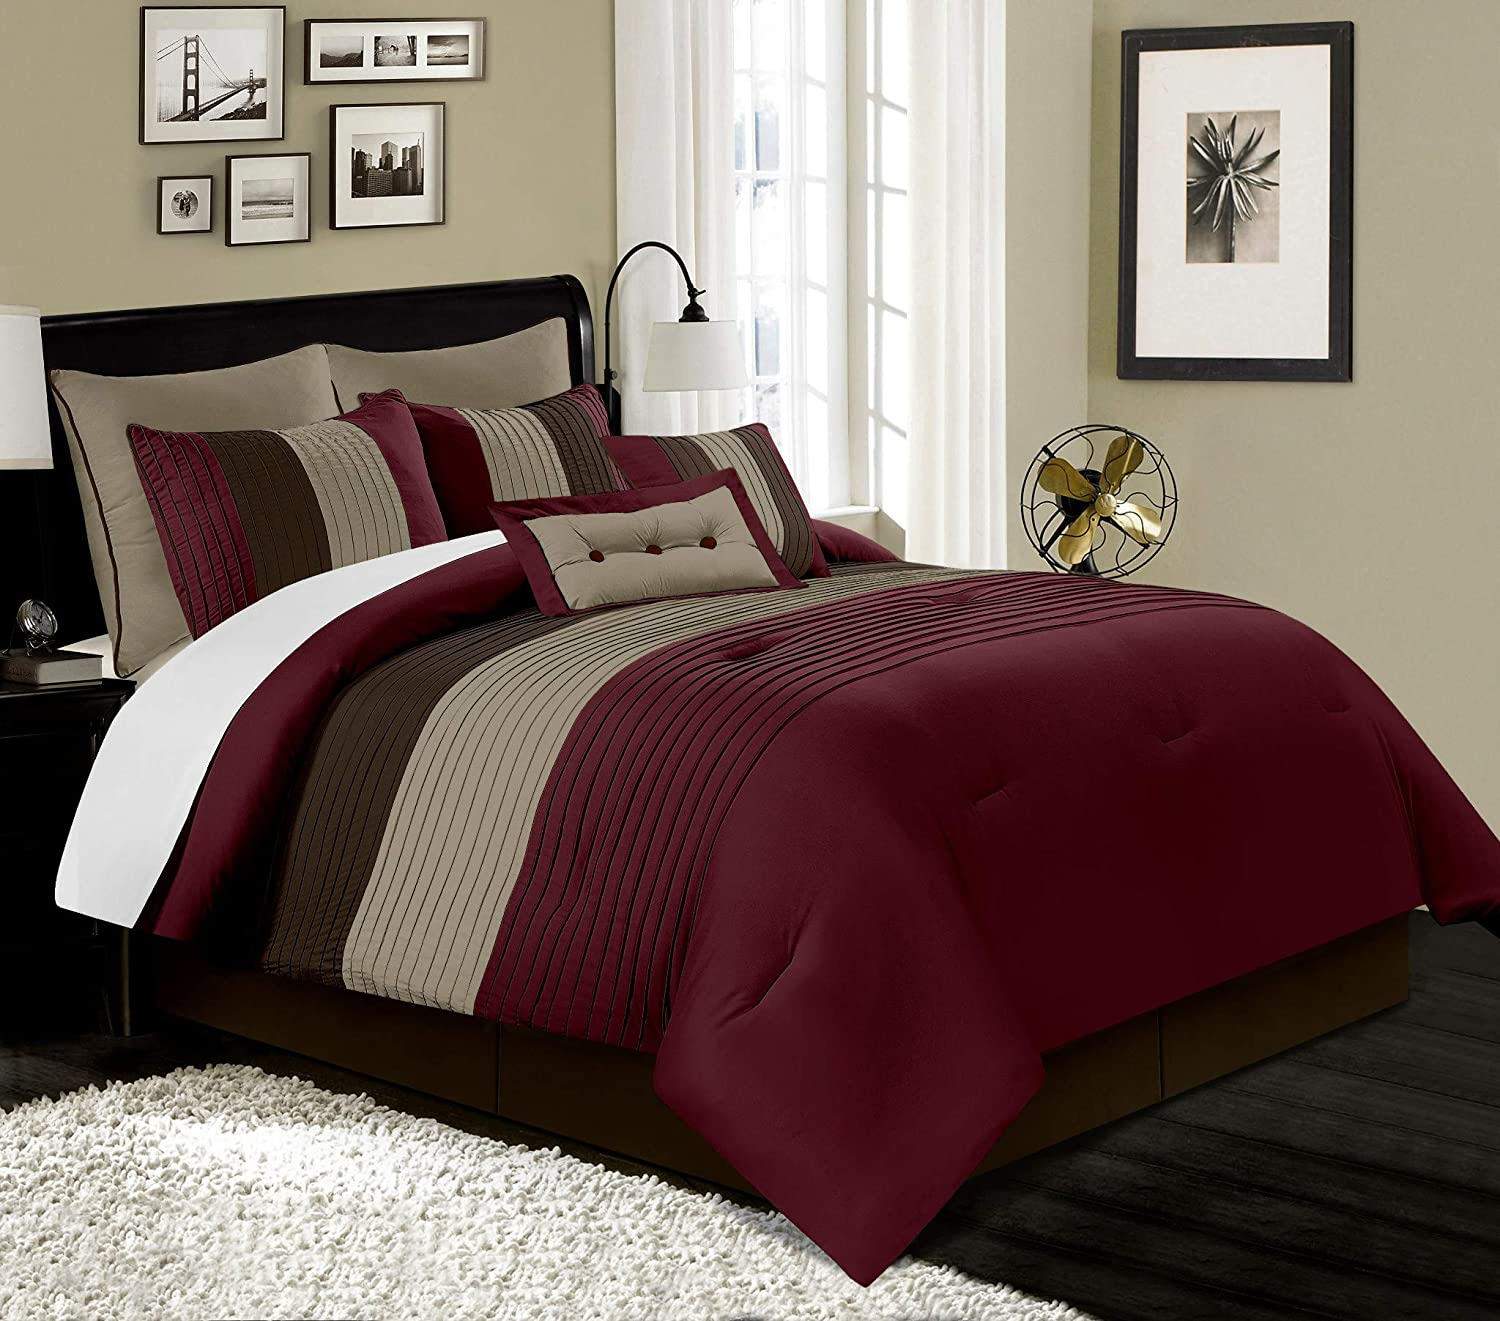 Queen, Burgundy/Brown/Coffee Comforter Set